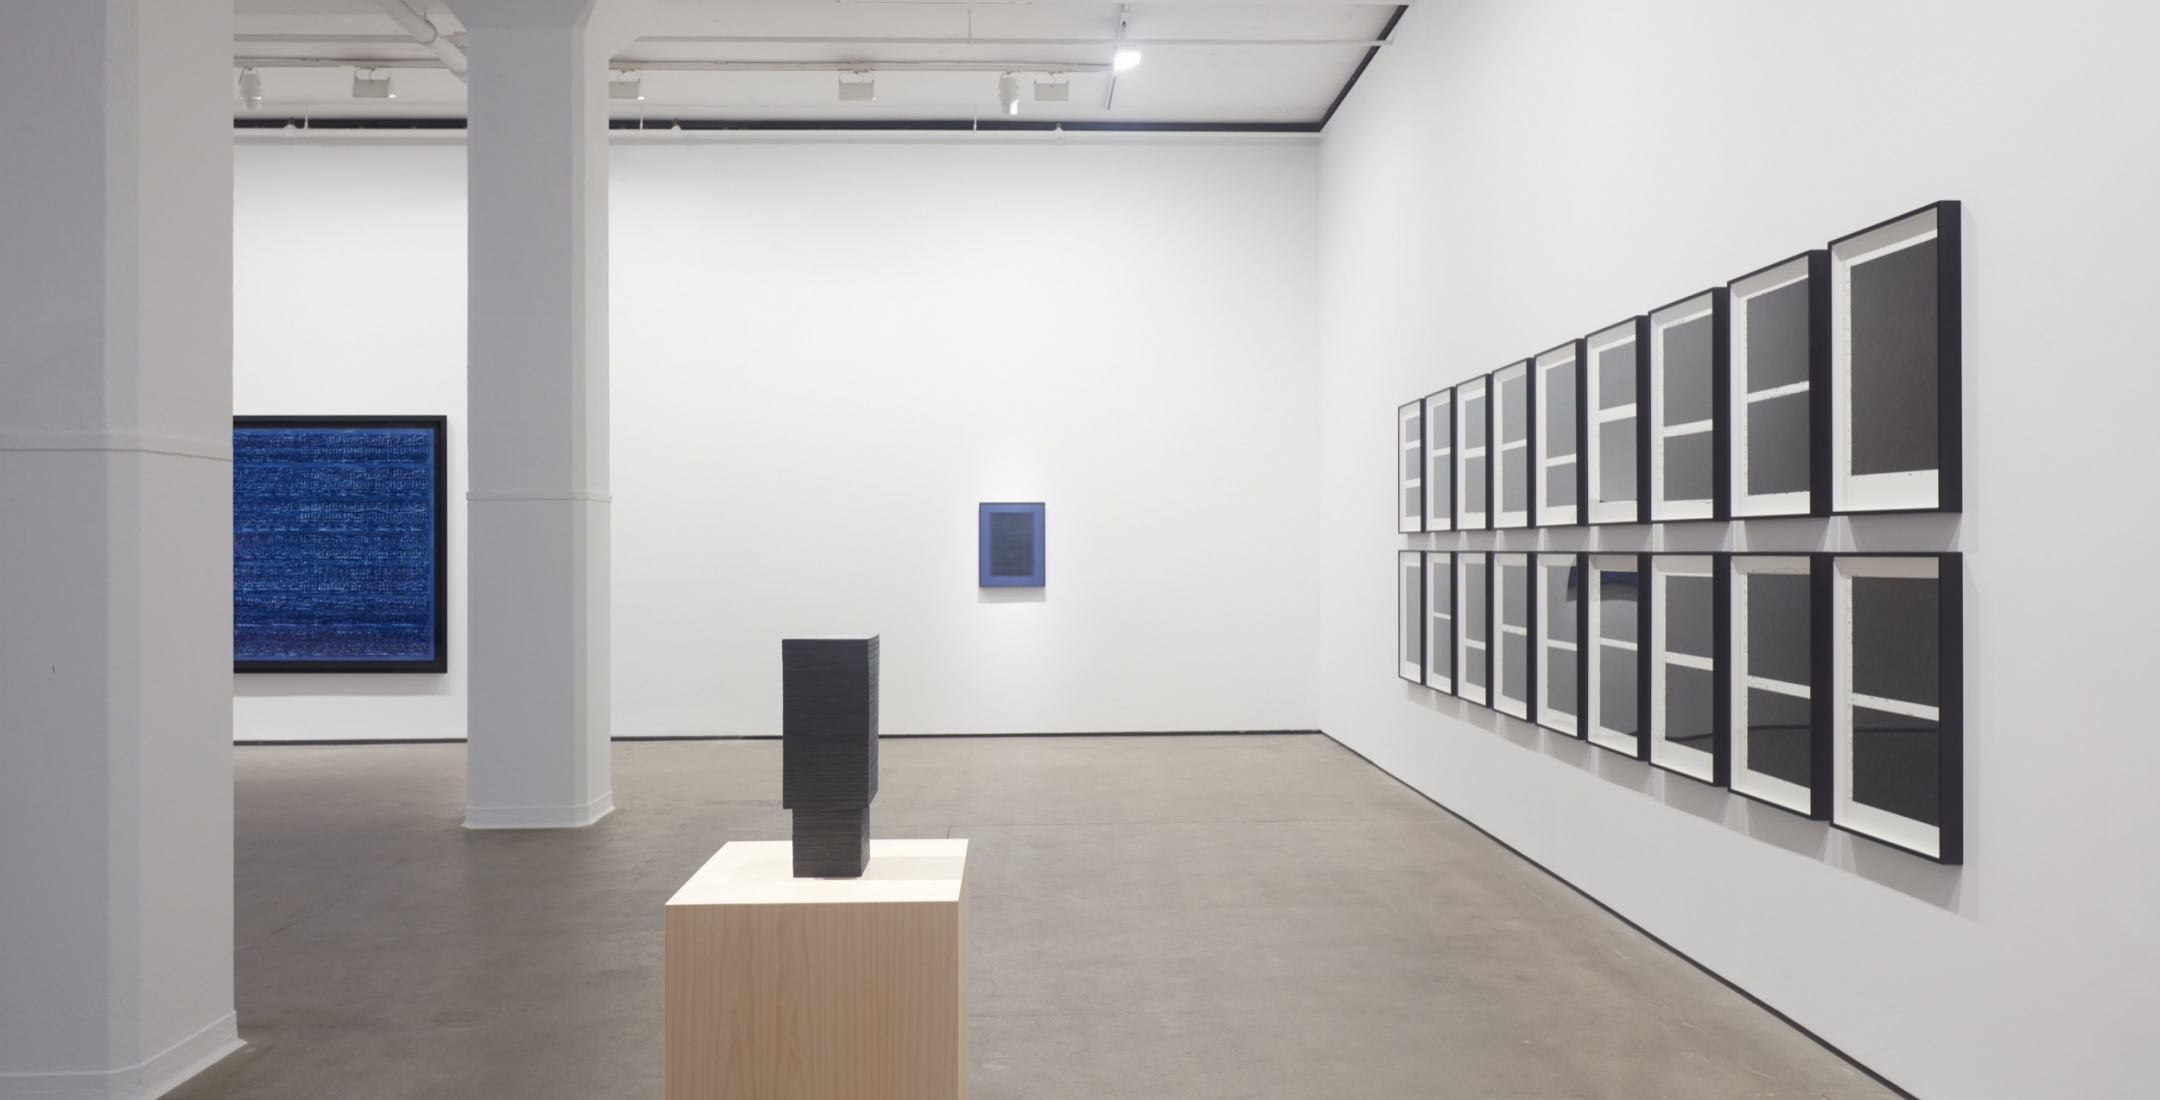 Idris Khan: Blue Rhythms